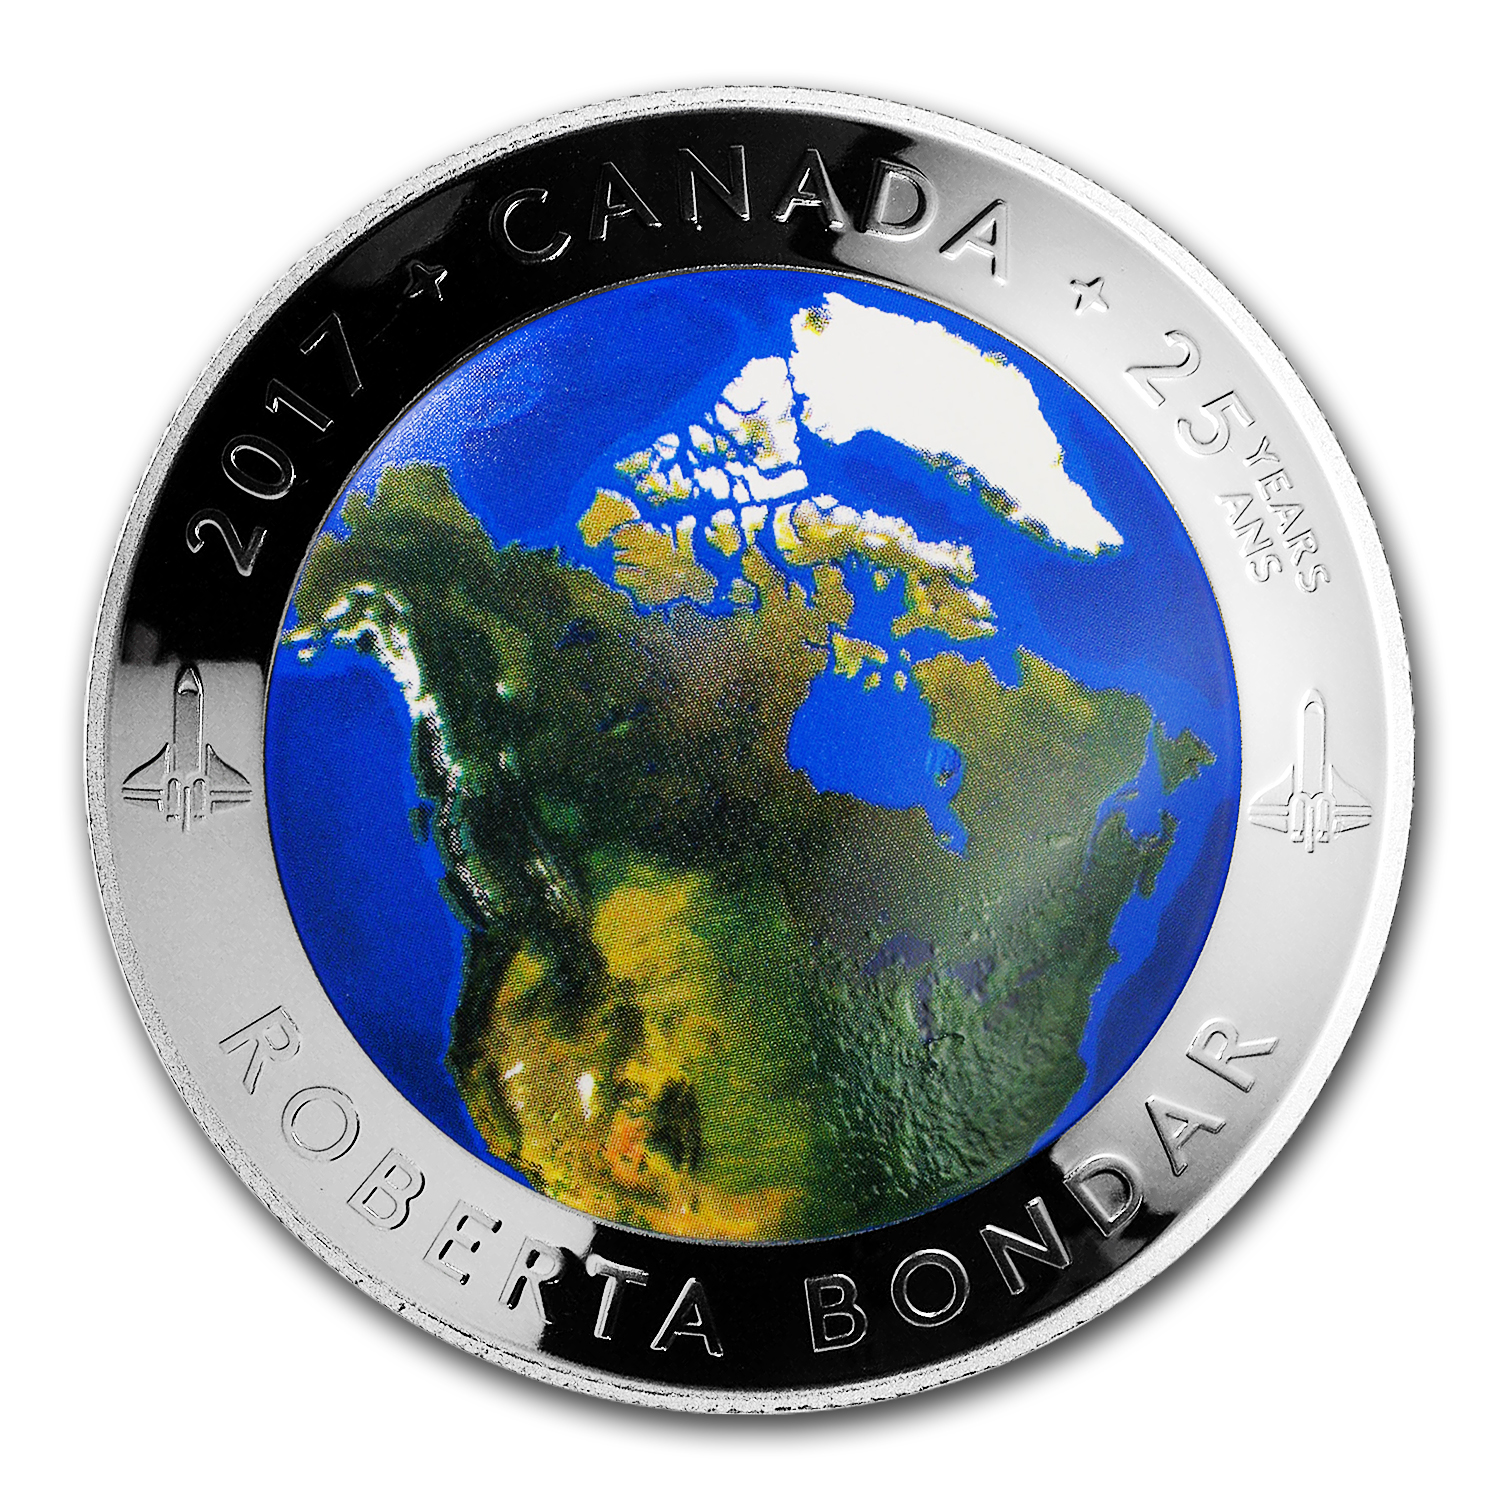 2017 Canada 1 oz Silver $25 A View of Canada from Space Proof